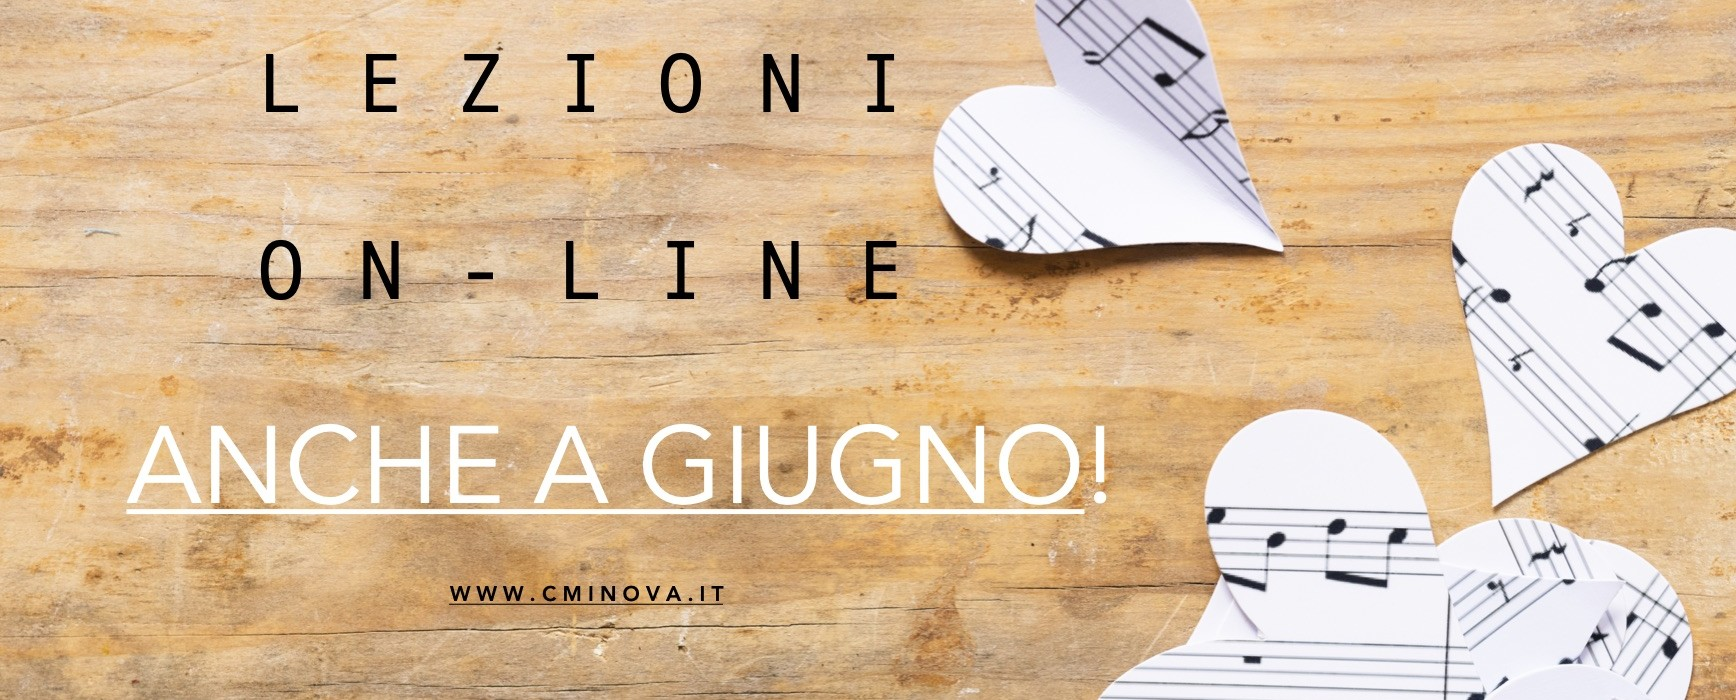 grafica-lezioni-on-line-copia